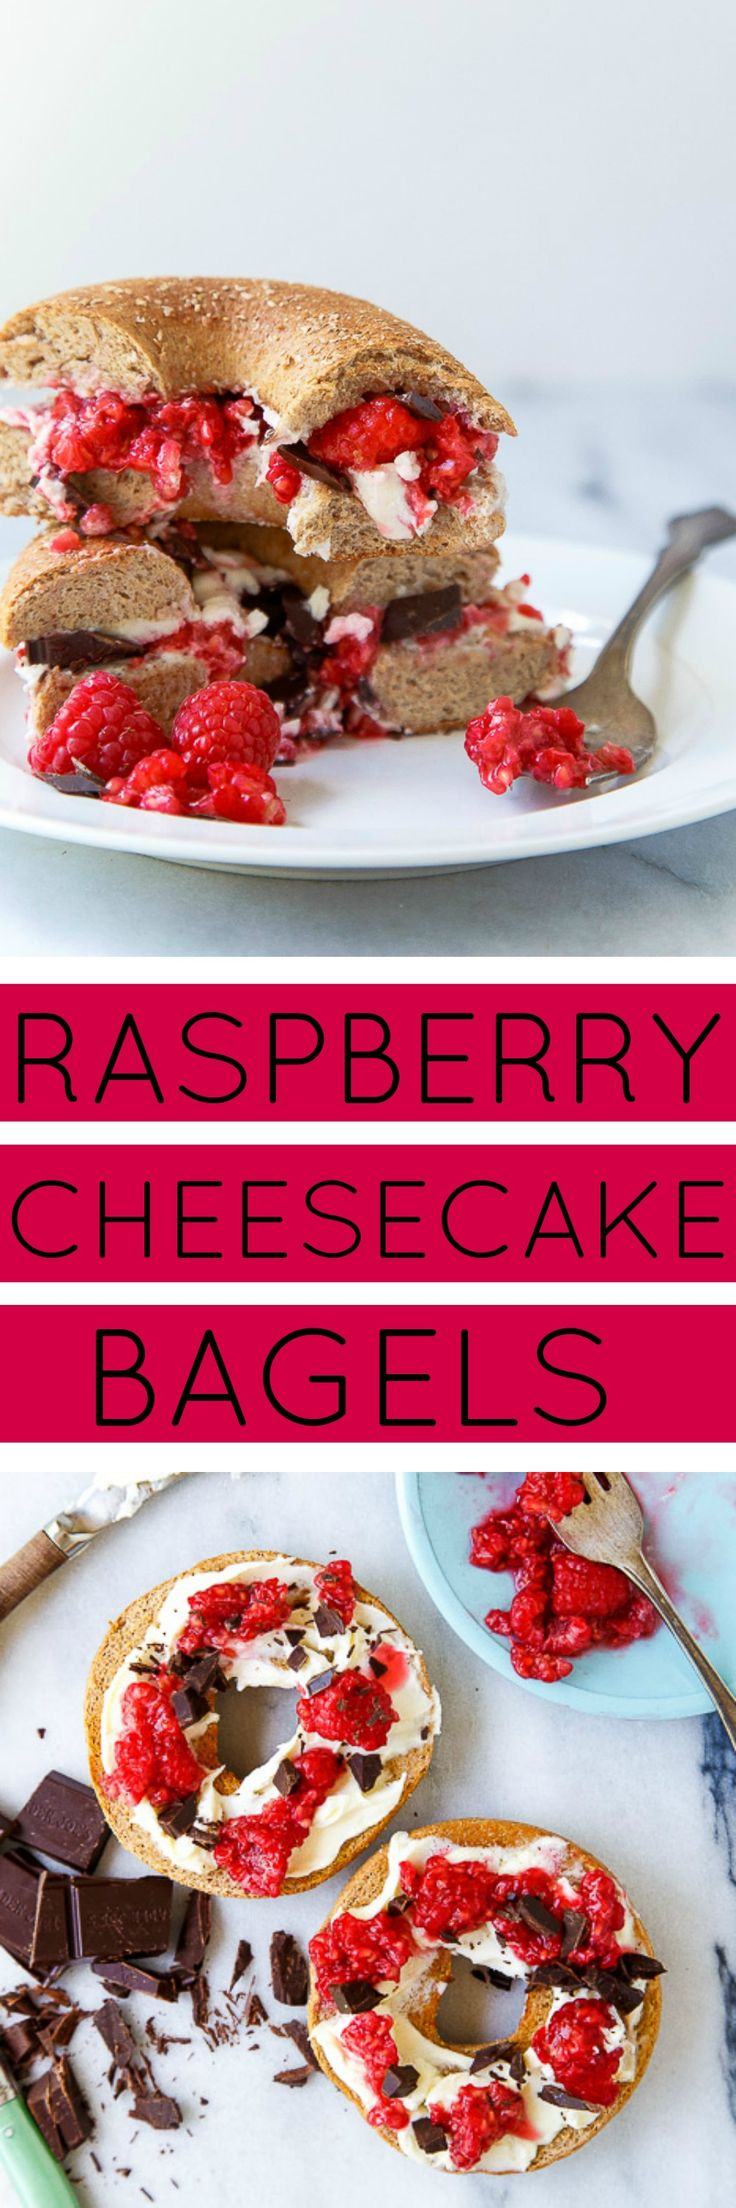 Cheesecake for breakfast! Healthy raspberry cheesecake breakfast bagels!